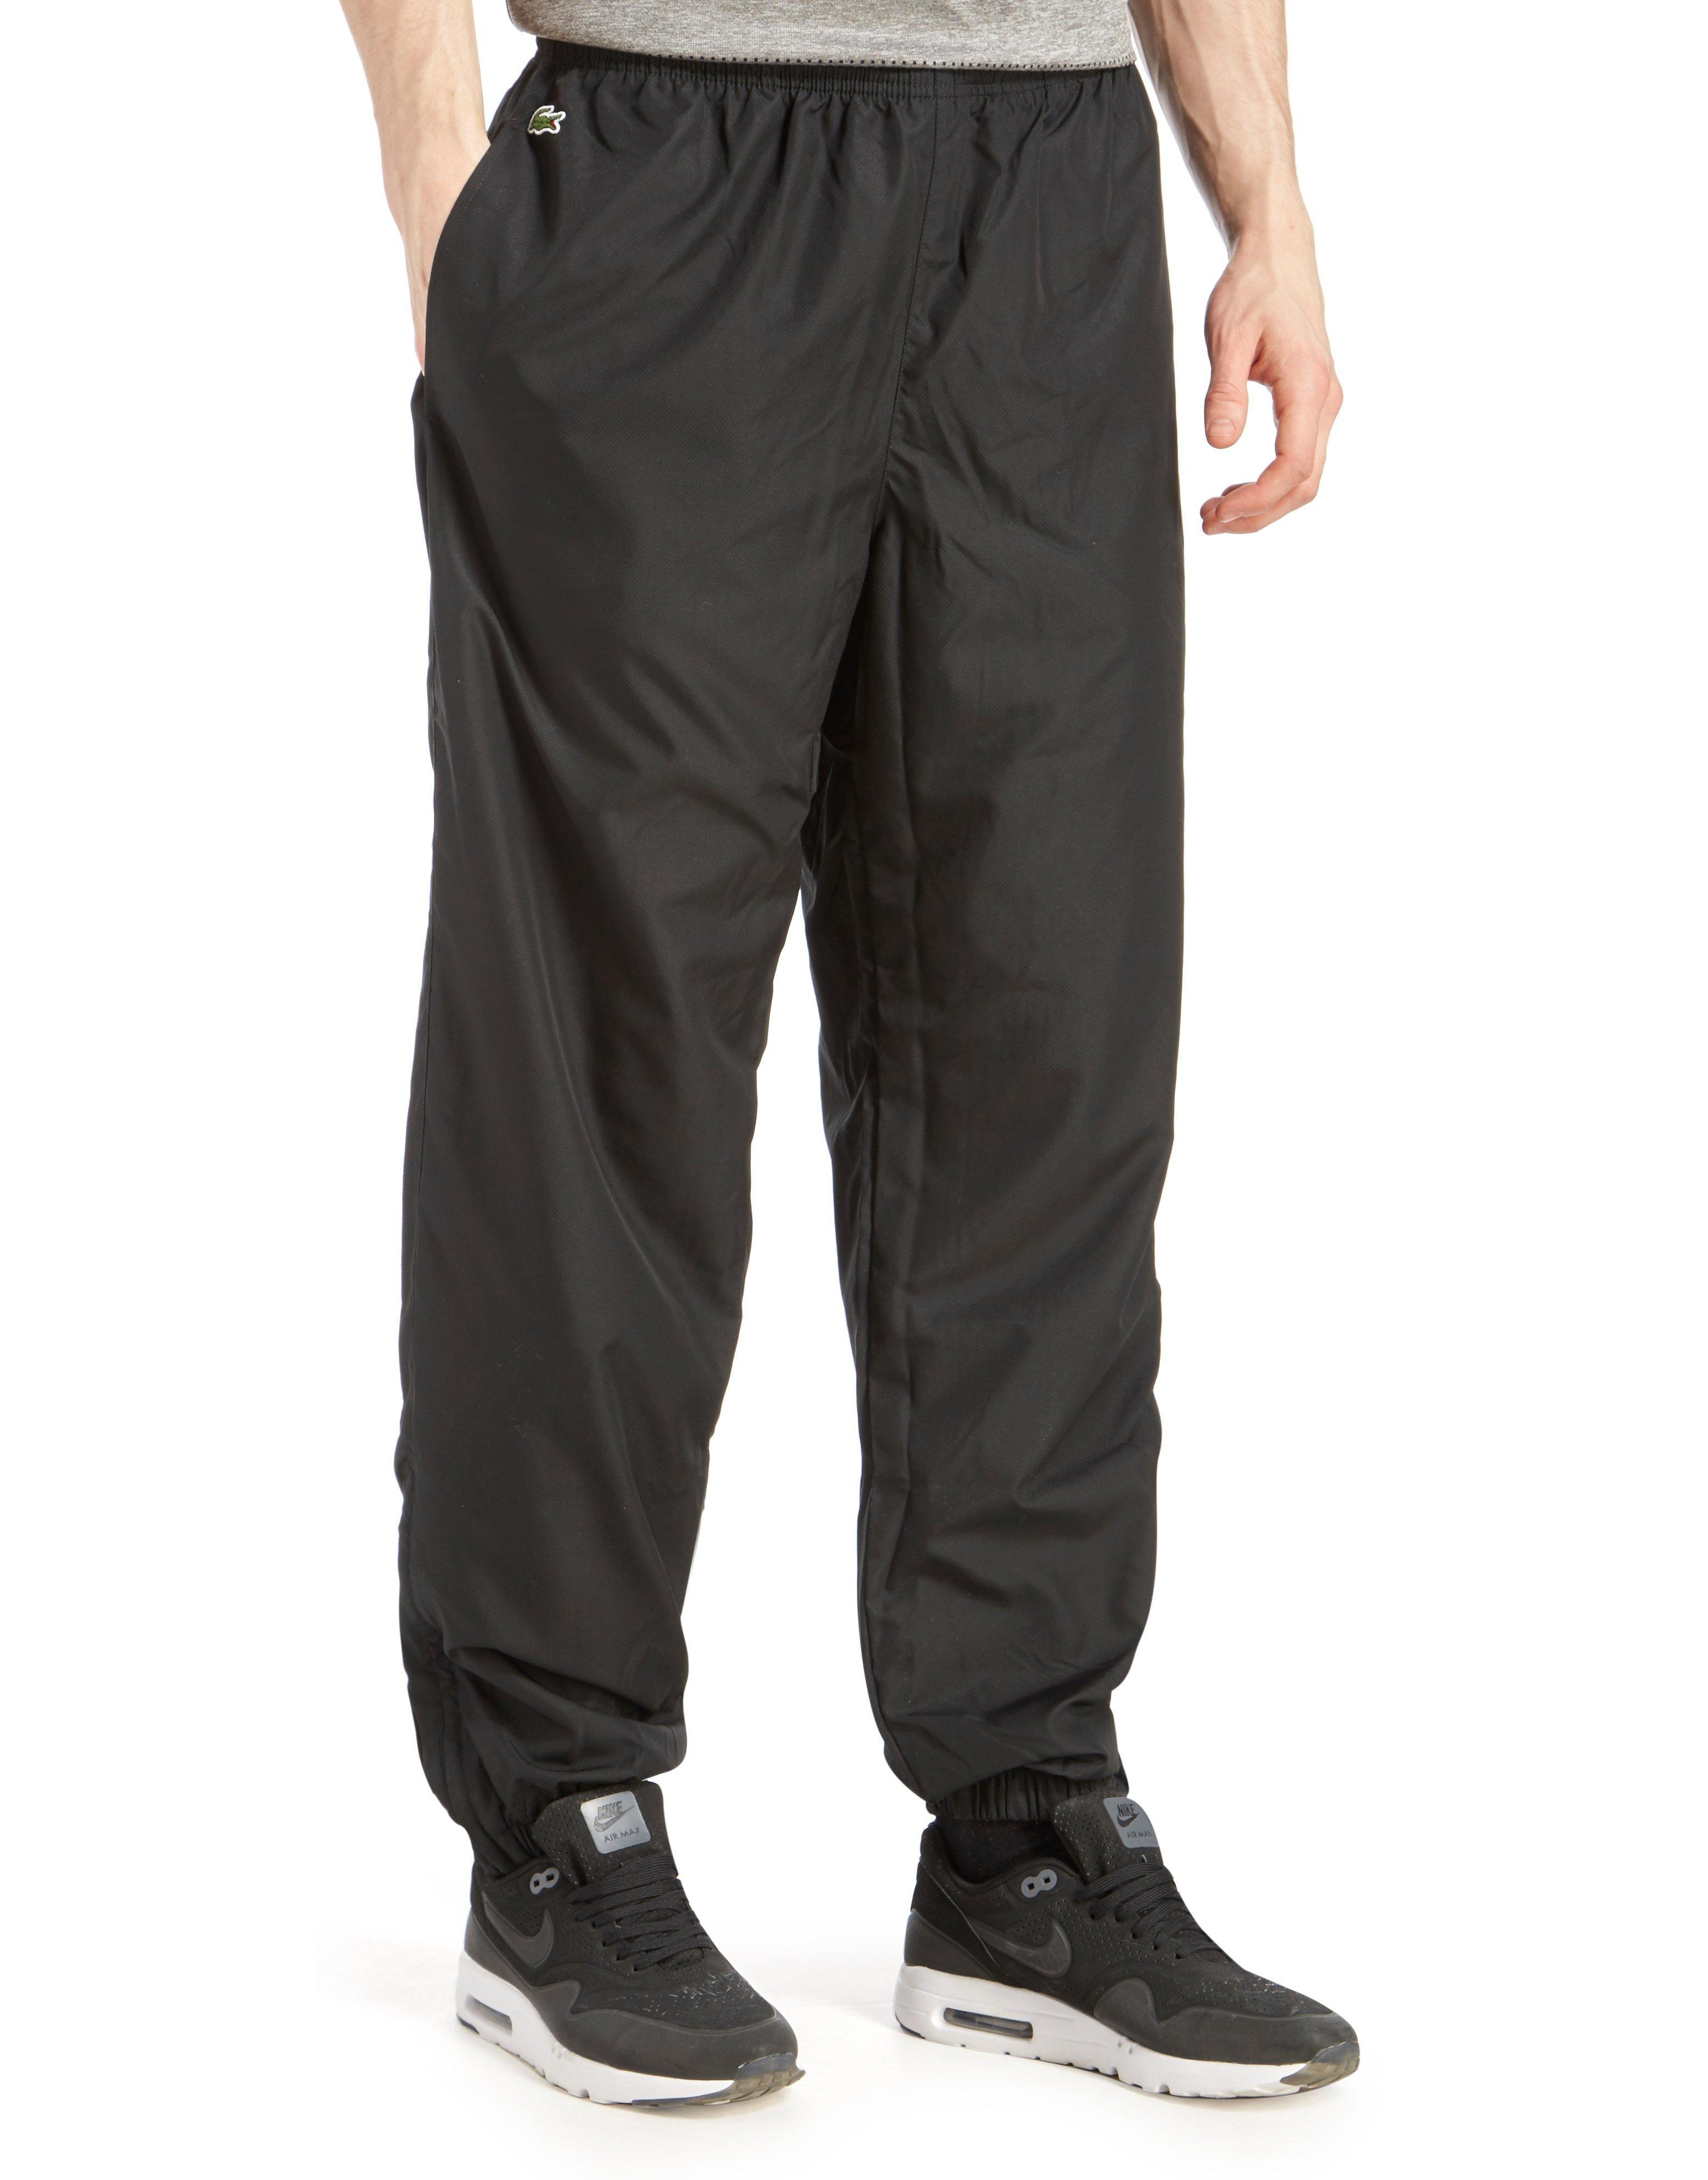 6e12072b27c869 Lacoste Guppy Track Pants in Black for Men - Lyst